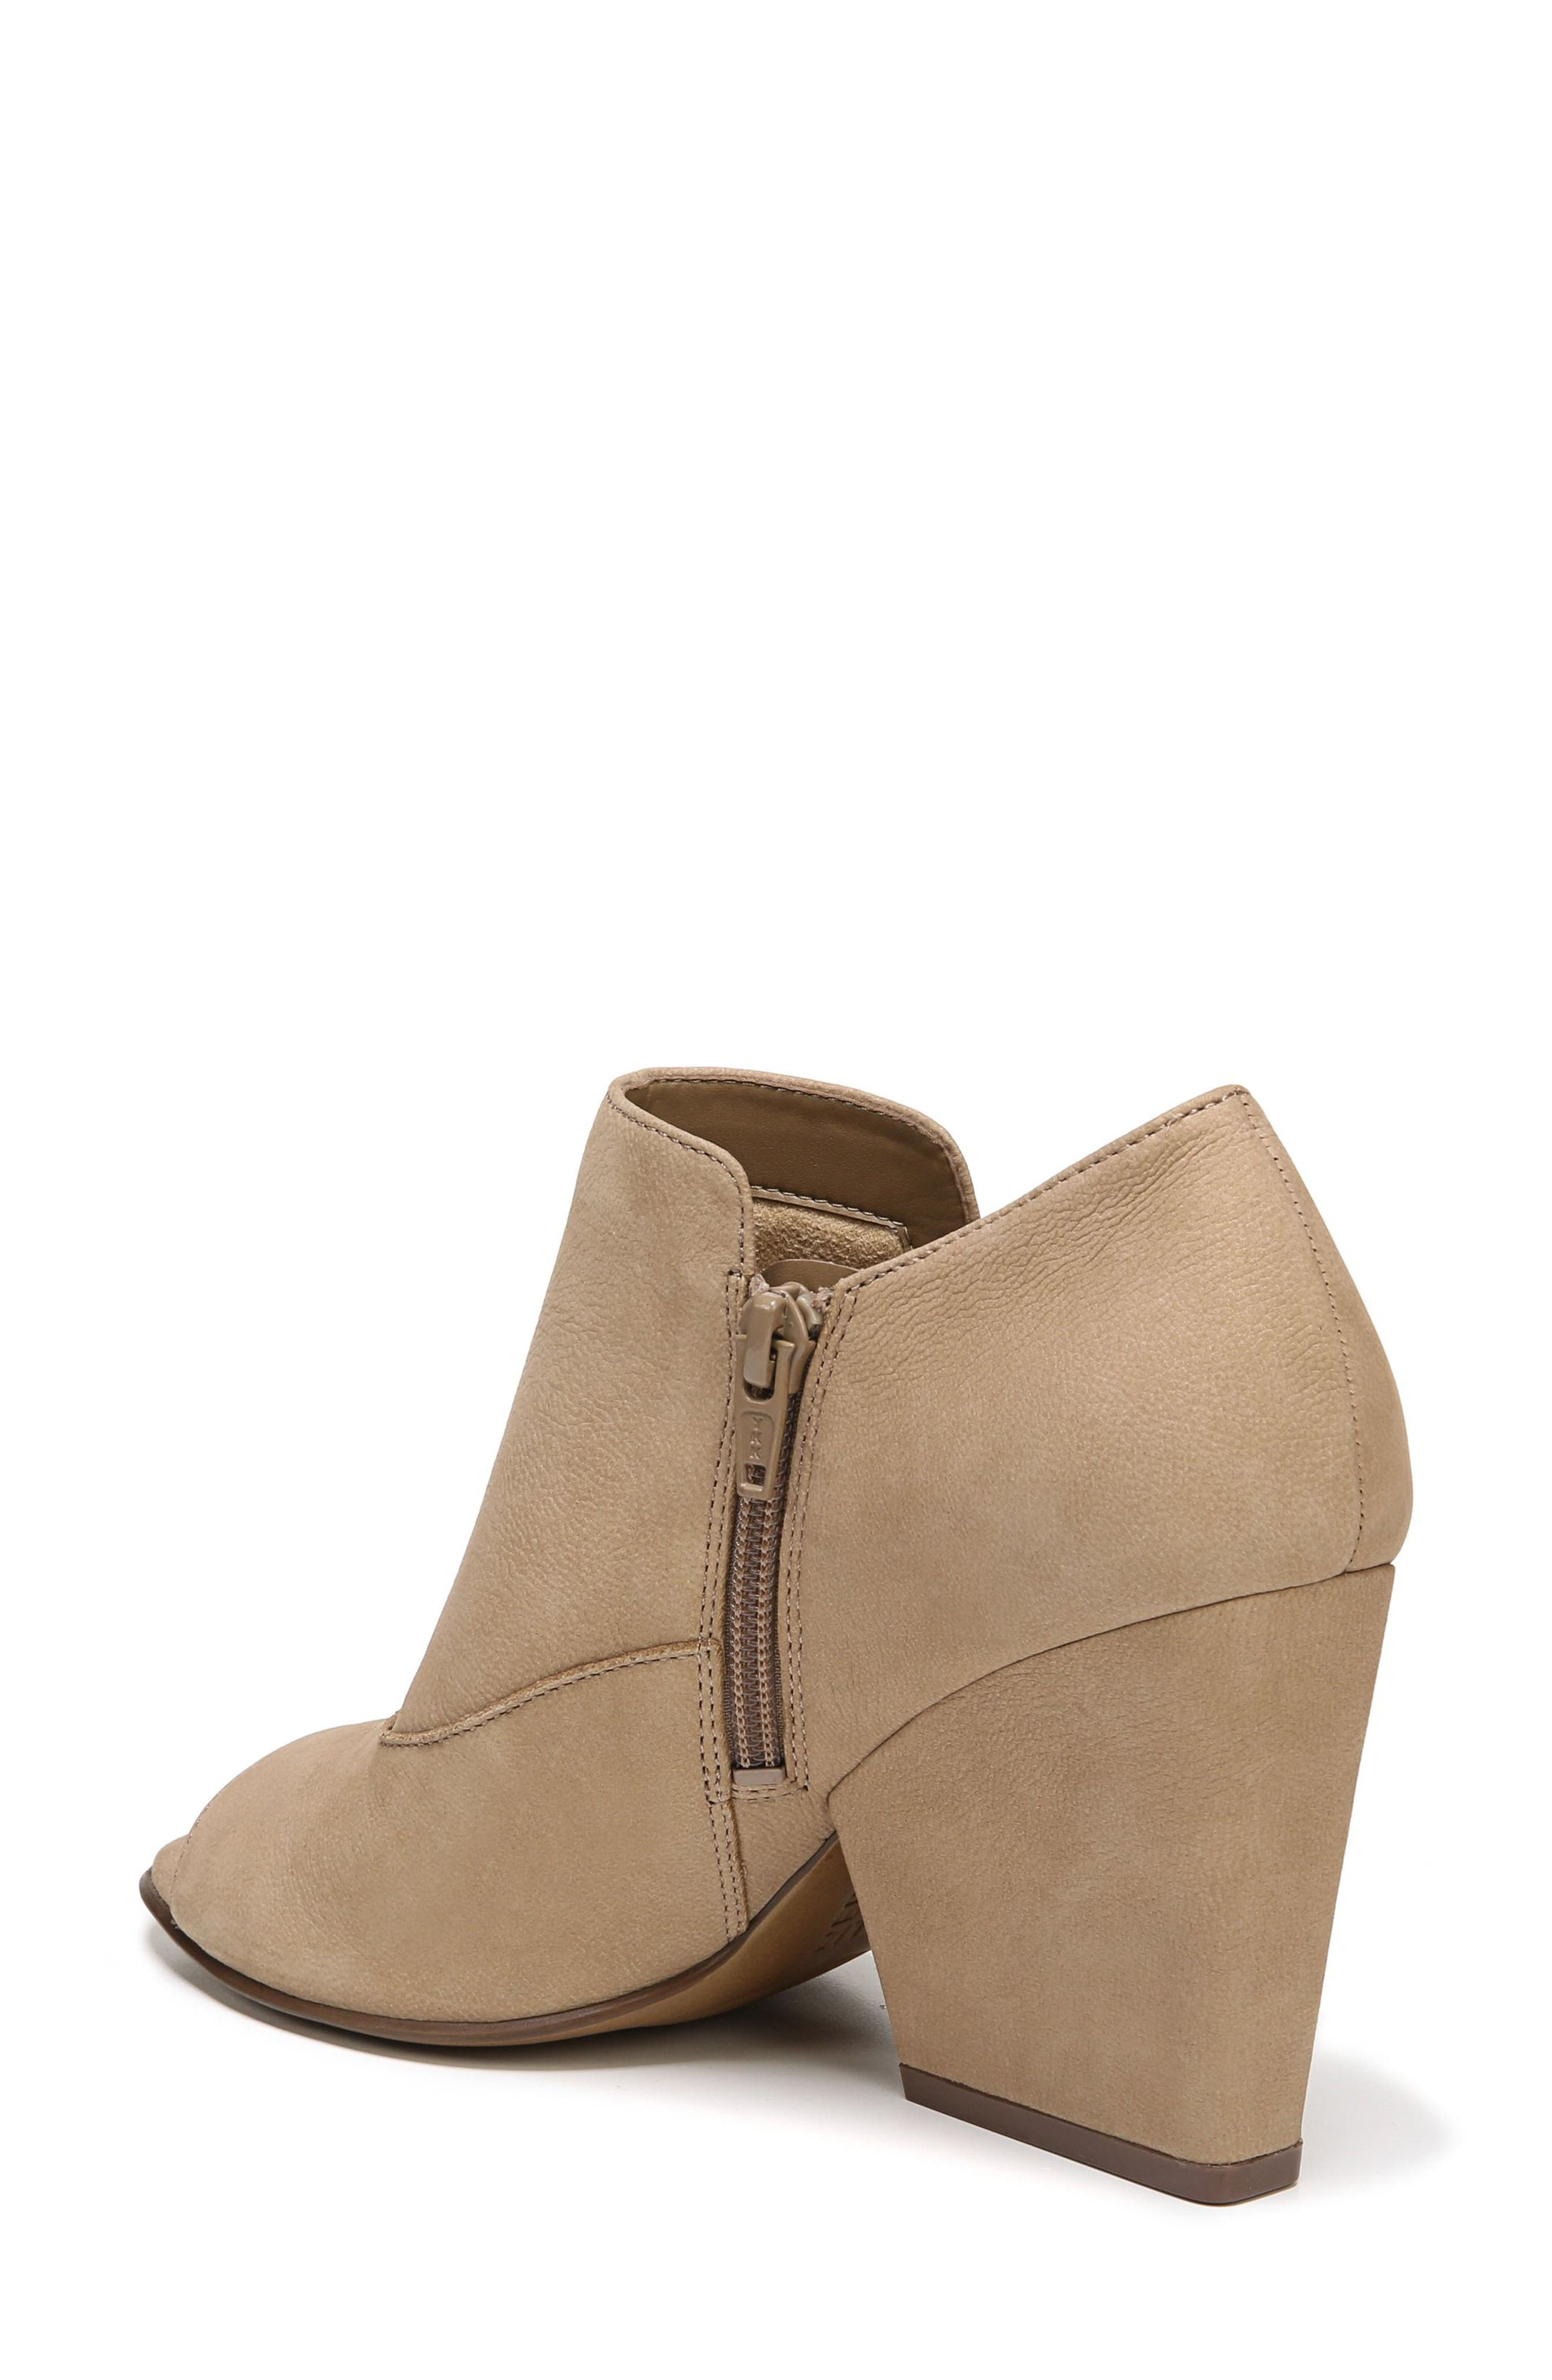 Skylar Open Toe Bootie,                             Alternate thumbnail 2, color,                             Barley Nubuck